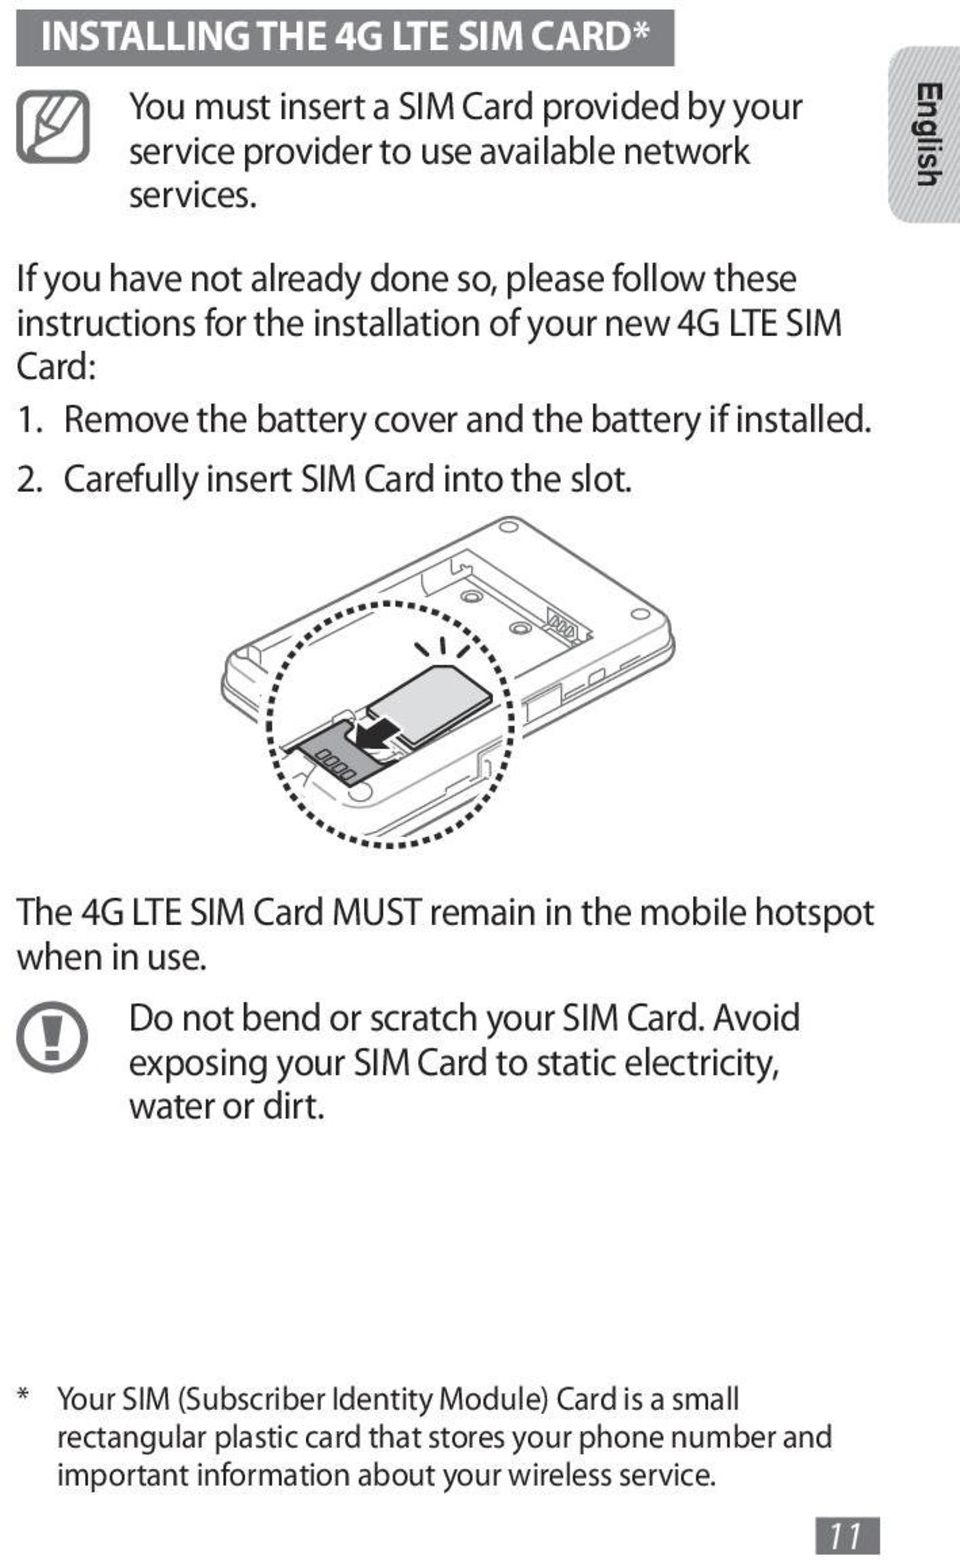 Remove the battery cover and the battery if installed. 2. Carefully insert SIM Card into the slot. The 4G LTE SIM Card MUST remain in the mobile hotspot when in use.